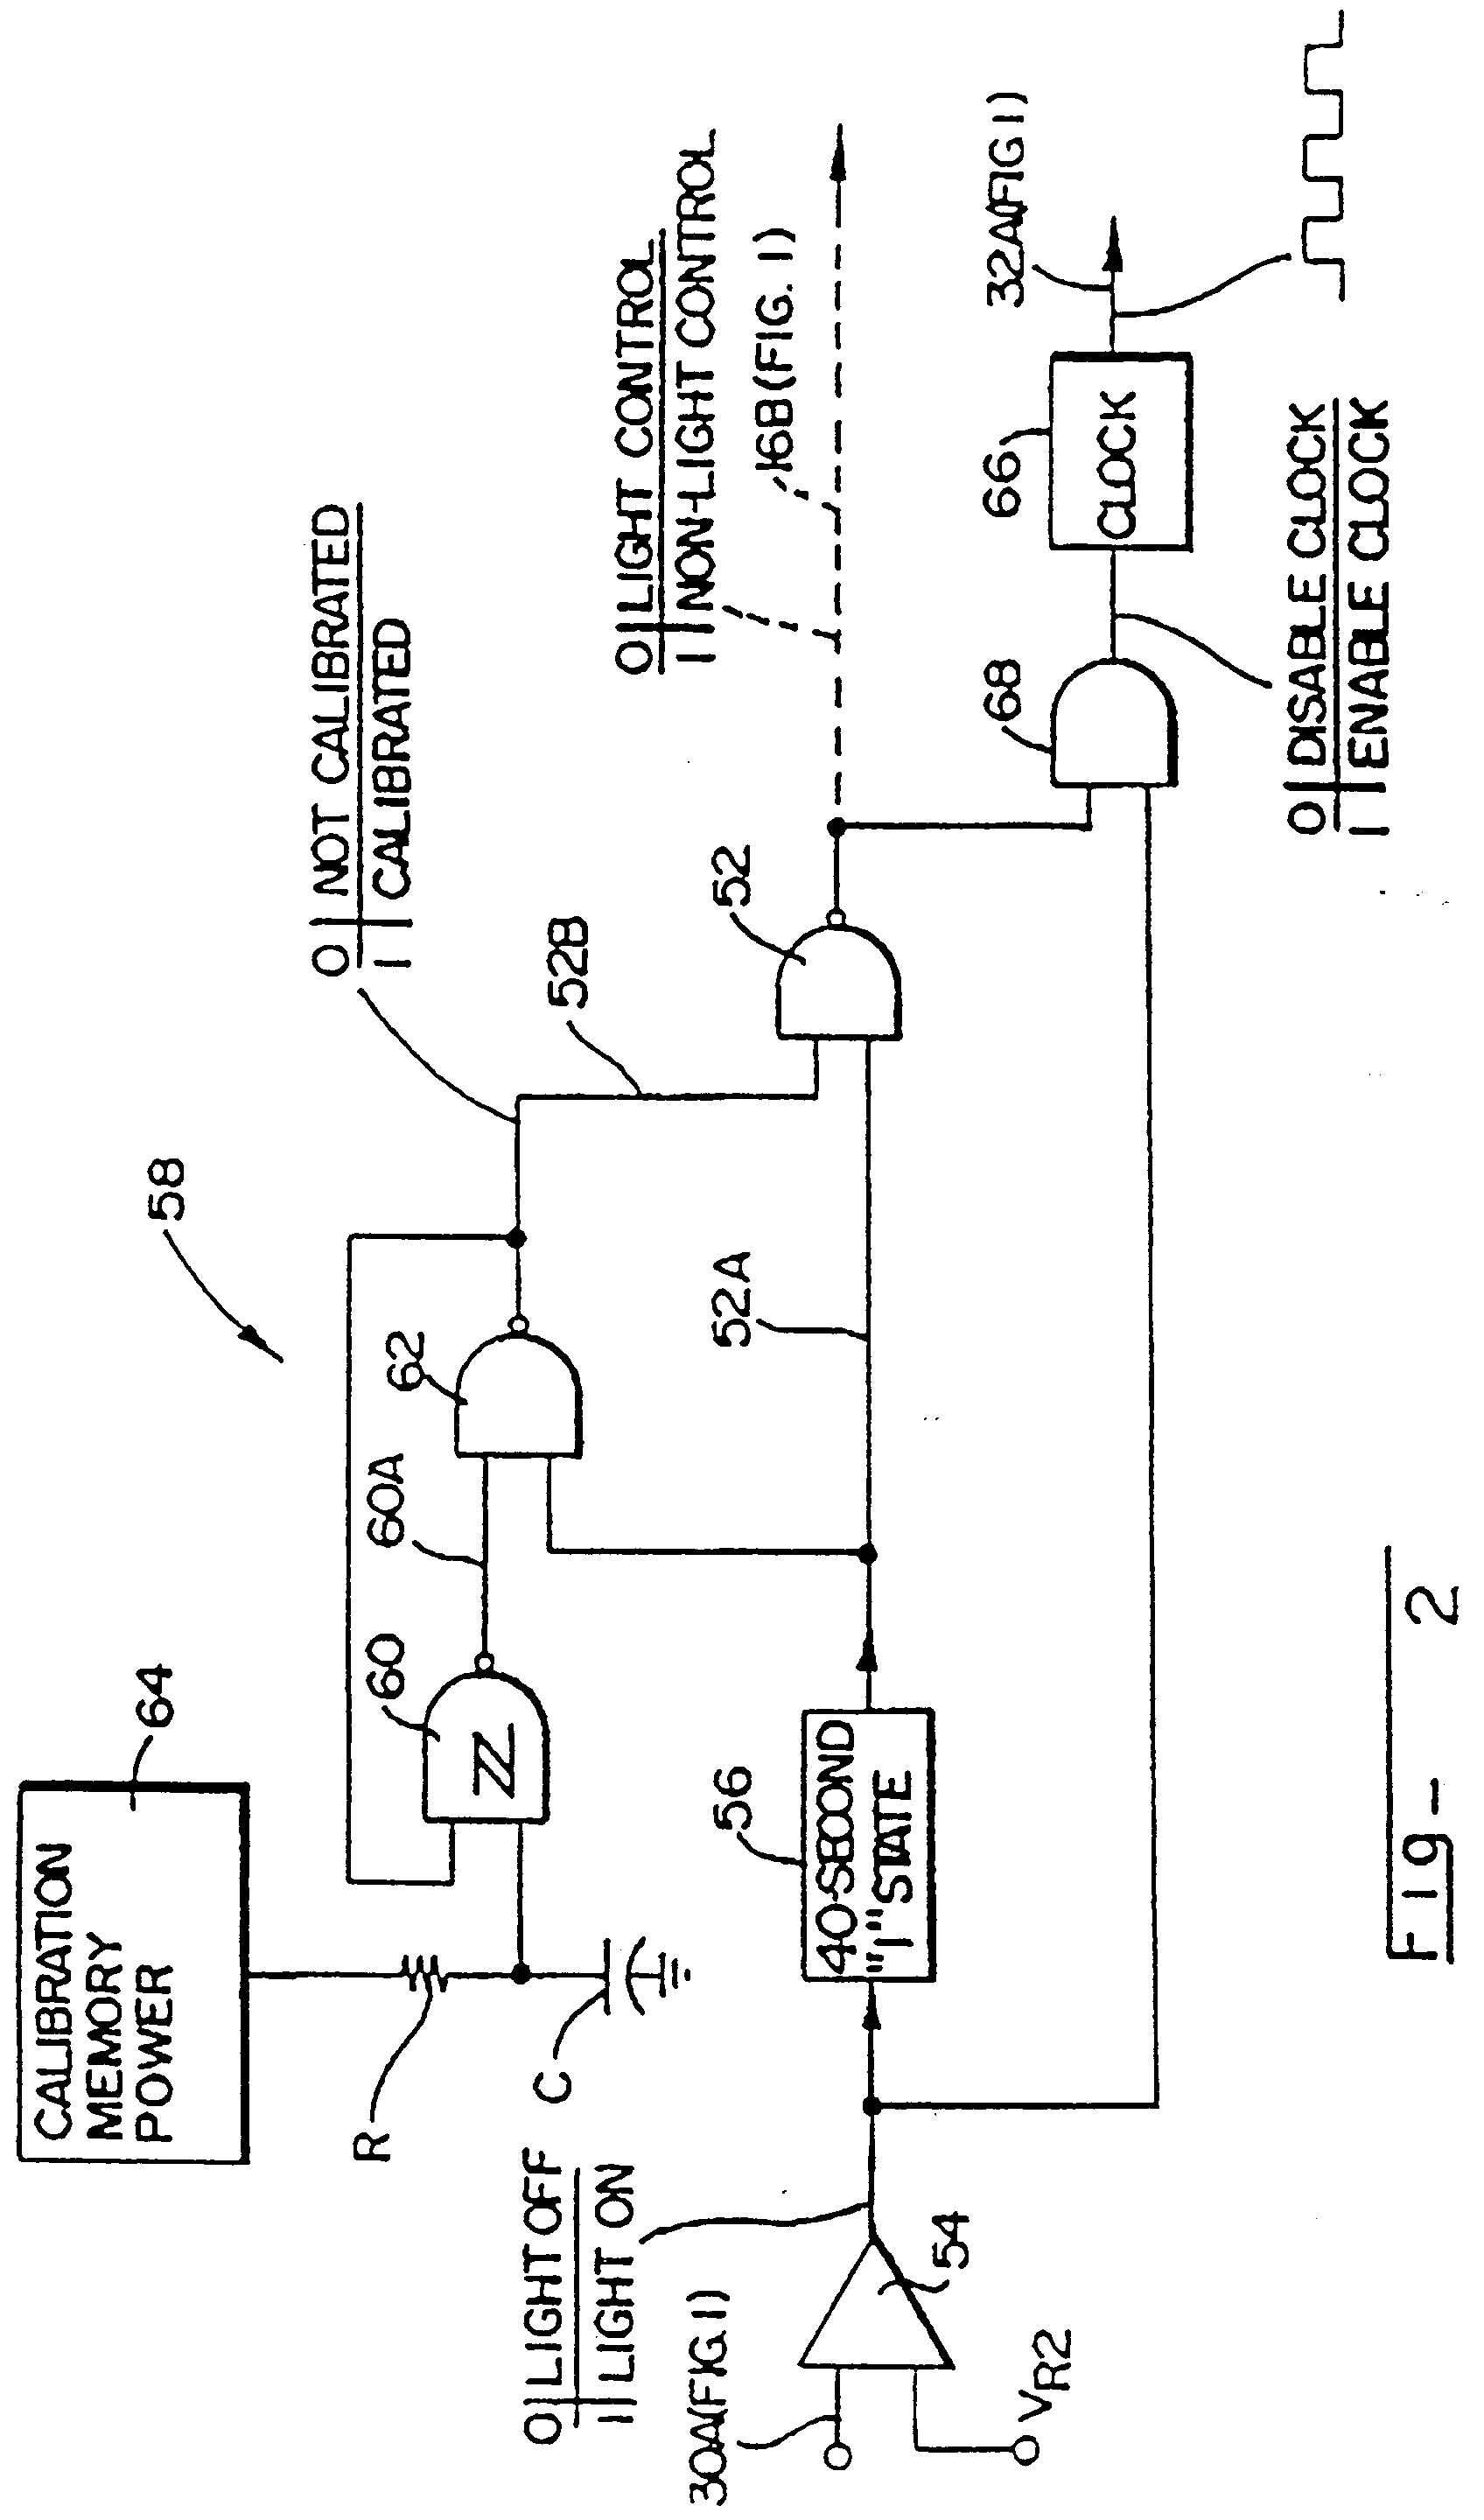 Gas Discharge Lamp Ballast Circuit With Automatically Calibrated Nand Gate Diagram Powersupplycircuit Drawing